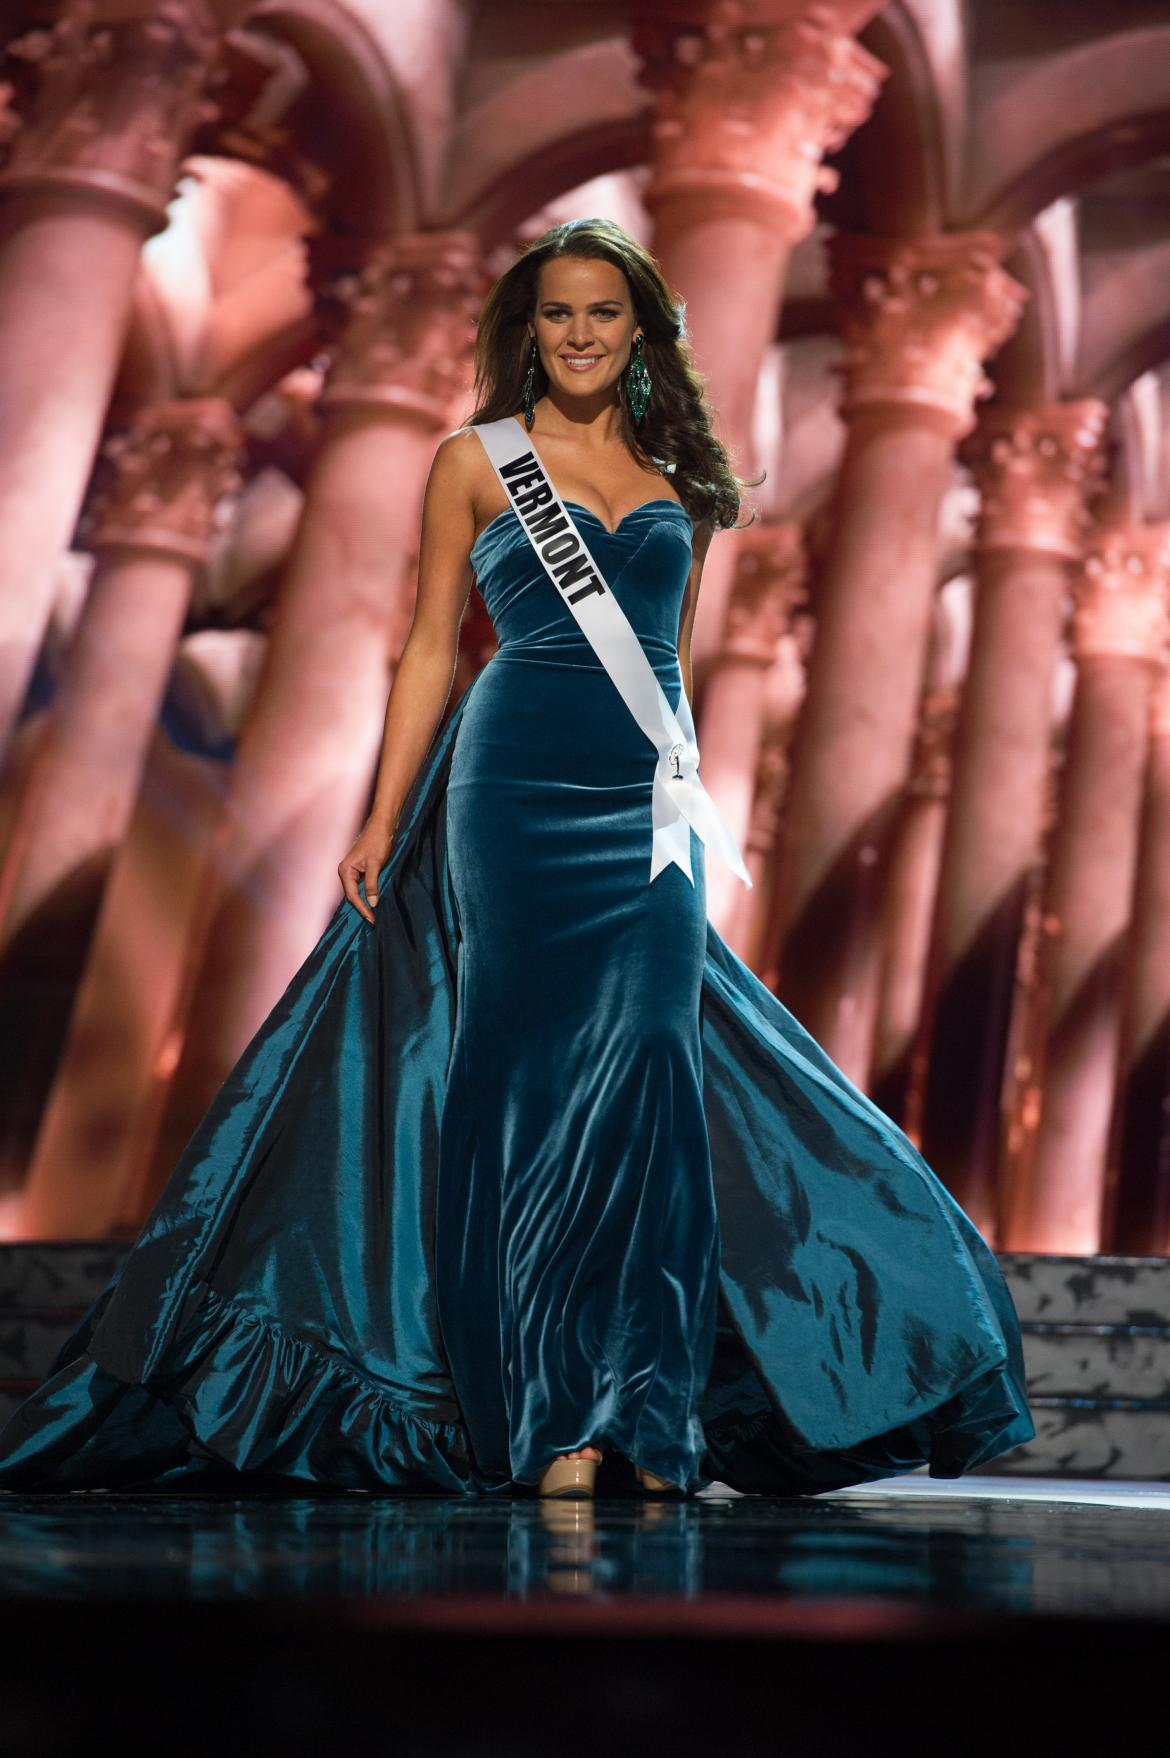 The Gowns of the Miss USA Pageant – Ani & Izzy